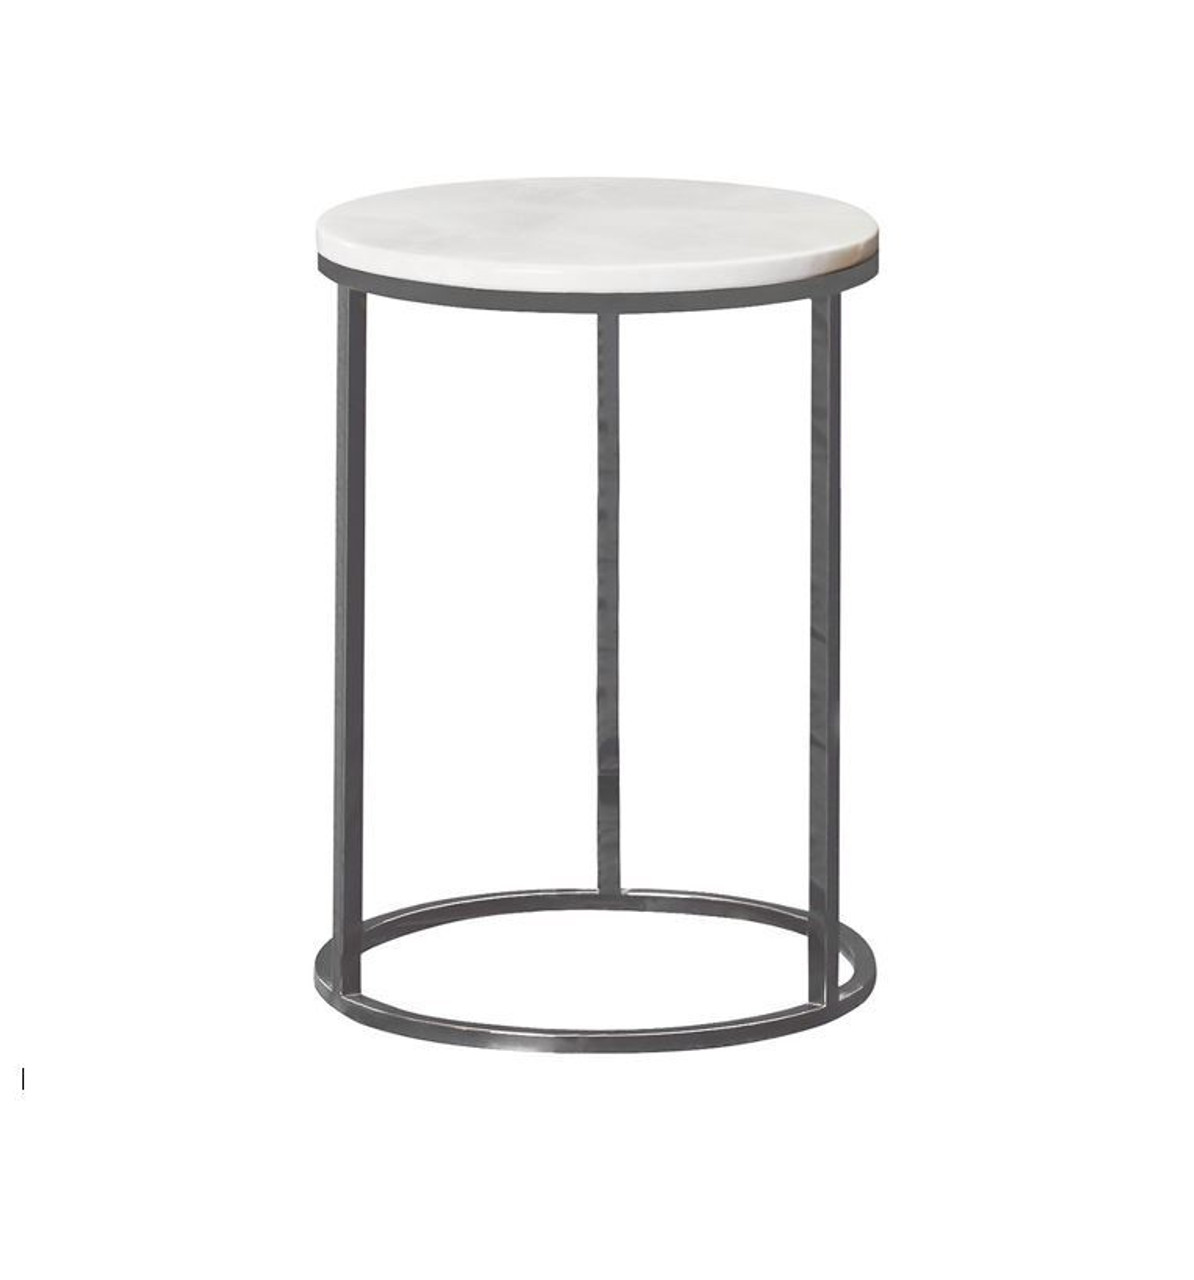 Eston Small Round Side Table With Marble Top Model 9101 As Pictured My Furniture Store Furniture And Bedding Super Store Australia